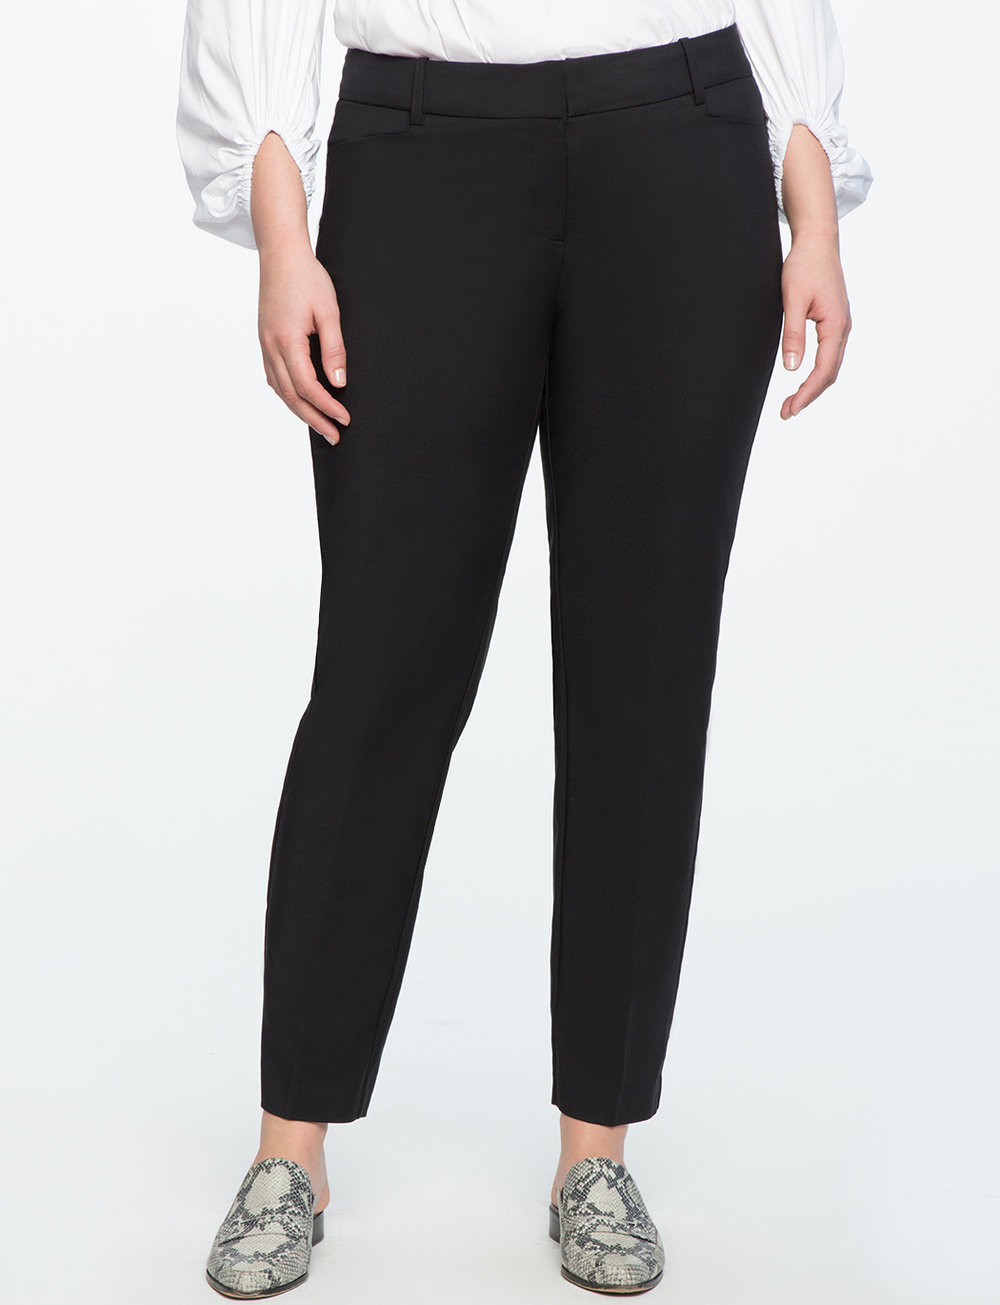 Kady Fit Double-Weave Pant. Available in several colors. Eloquii. $79. Additional 30% off with code: NEEDTHAT.